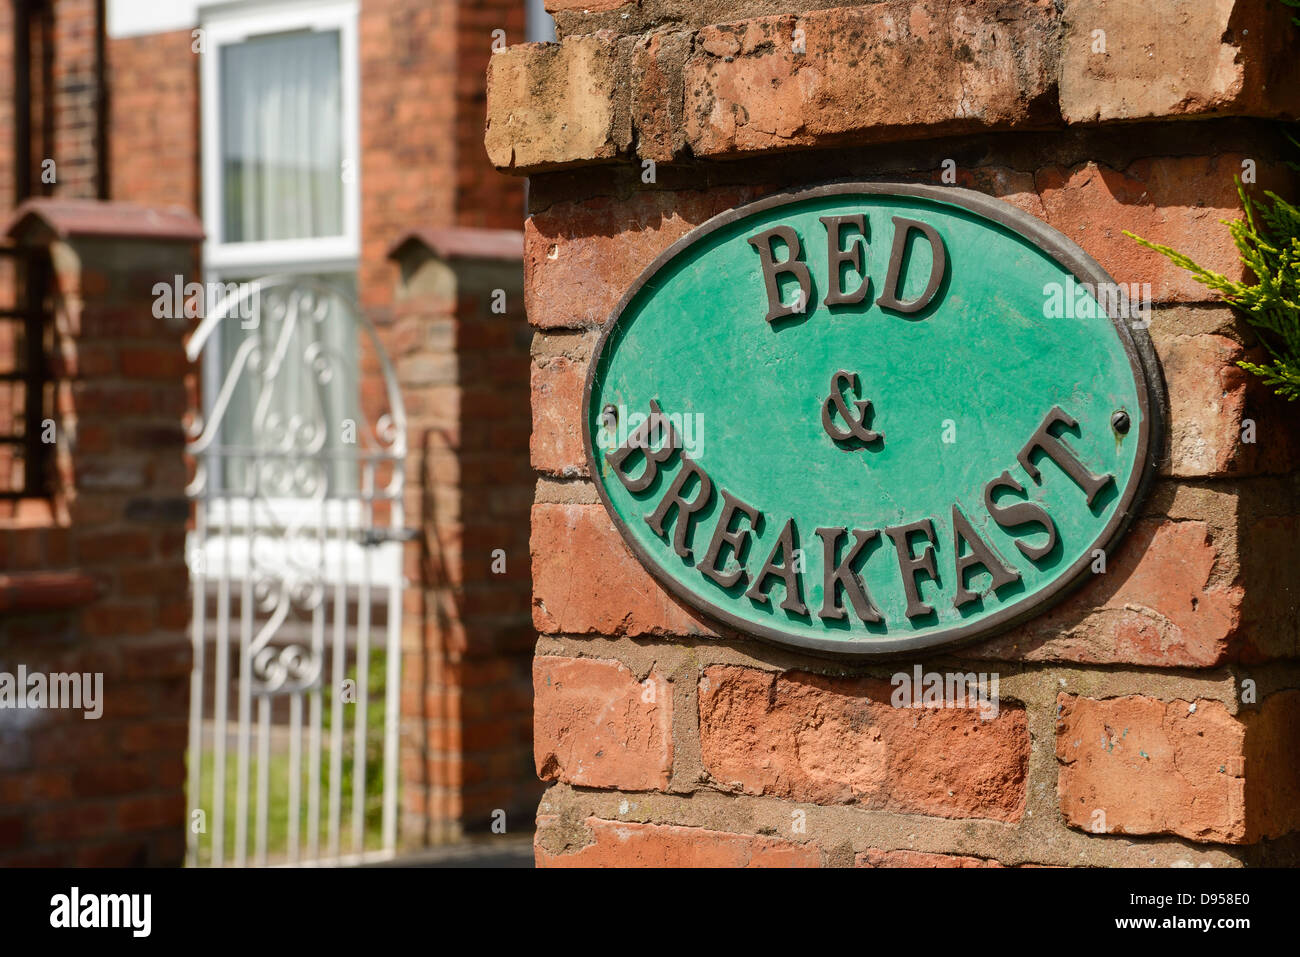 Bed and Breakfast sign - Stock Image